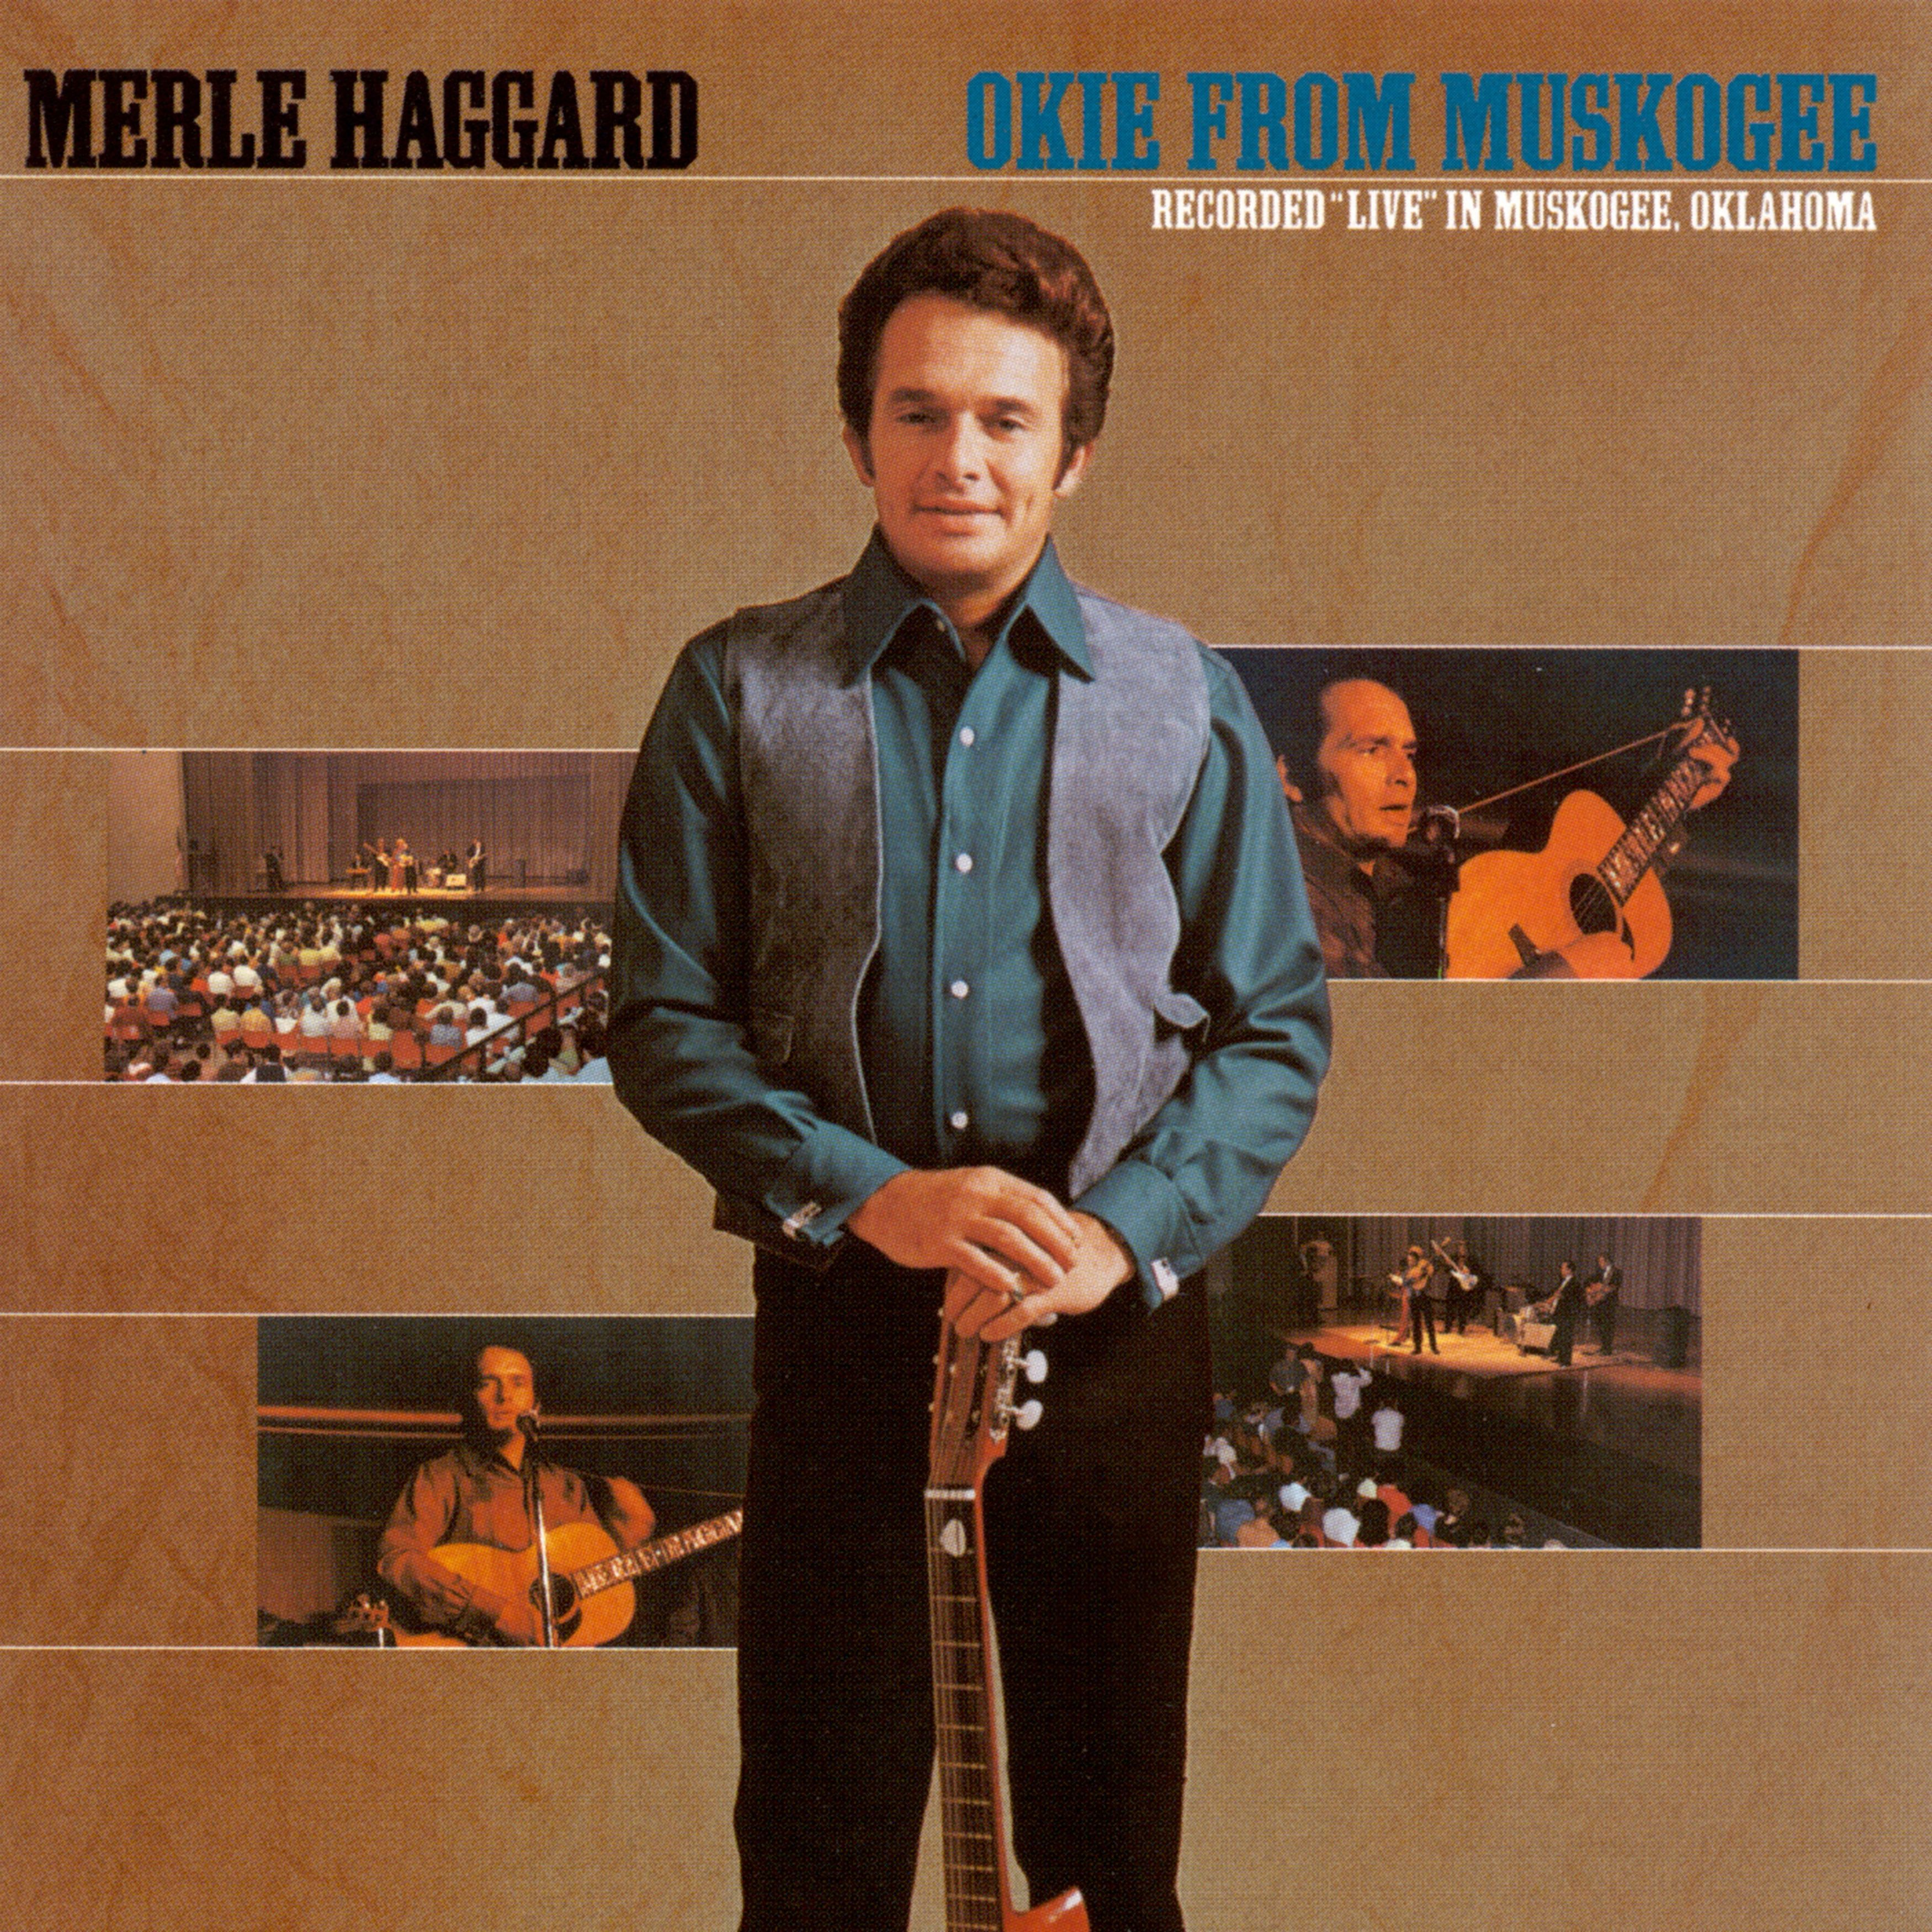 Muskogee, Oklahoma Is Hosting a Giant Celebration for the 50th Anniversary of Merle Haggard's <i>Okie from Muskogee</i>